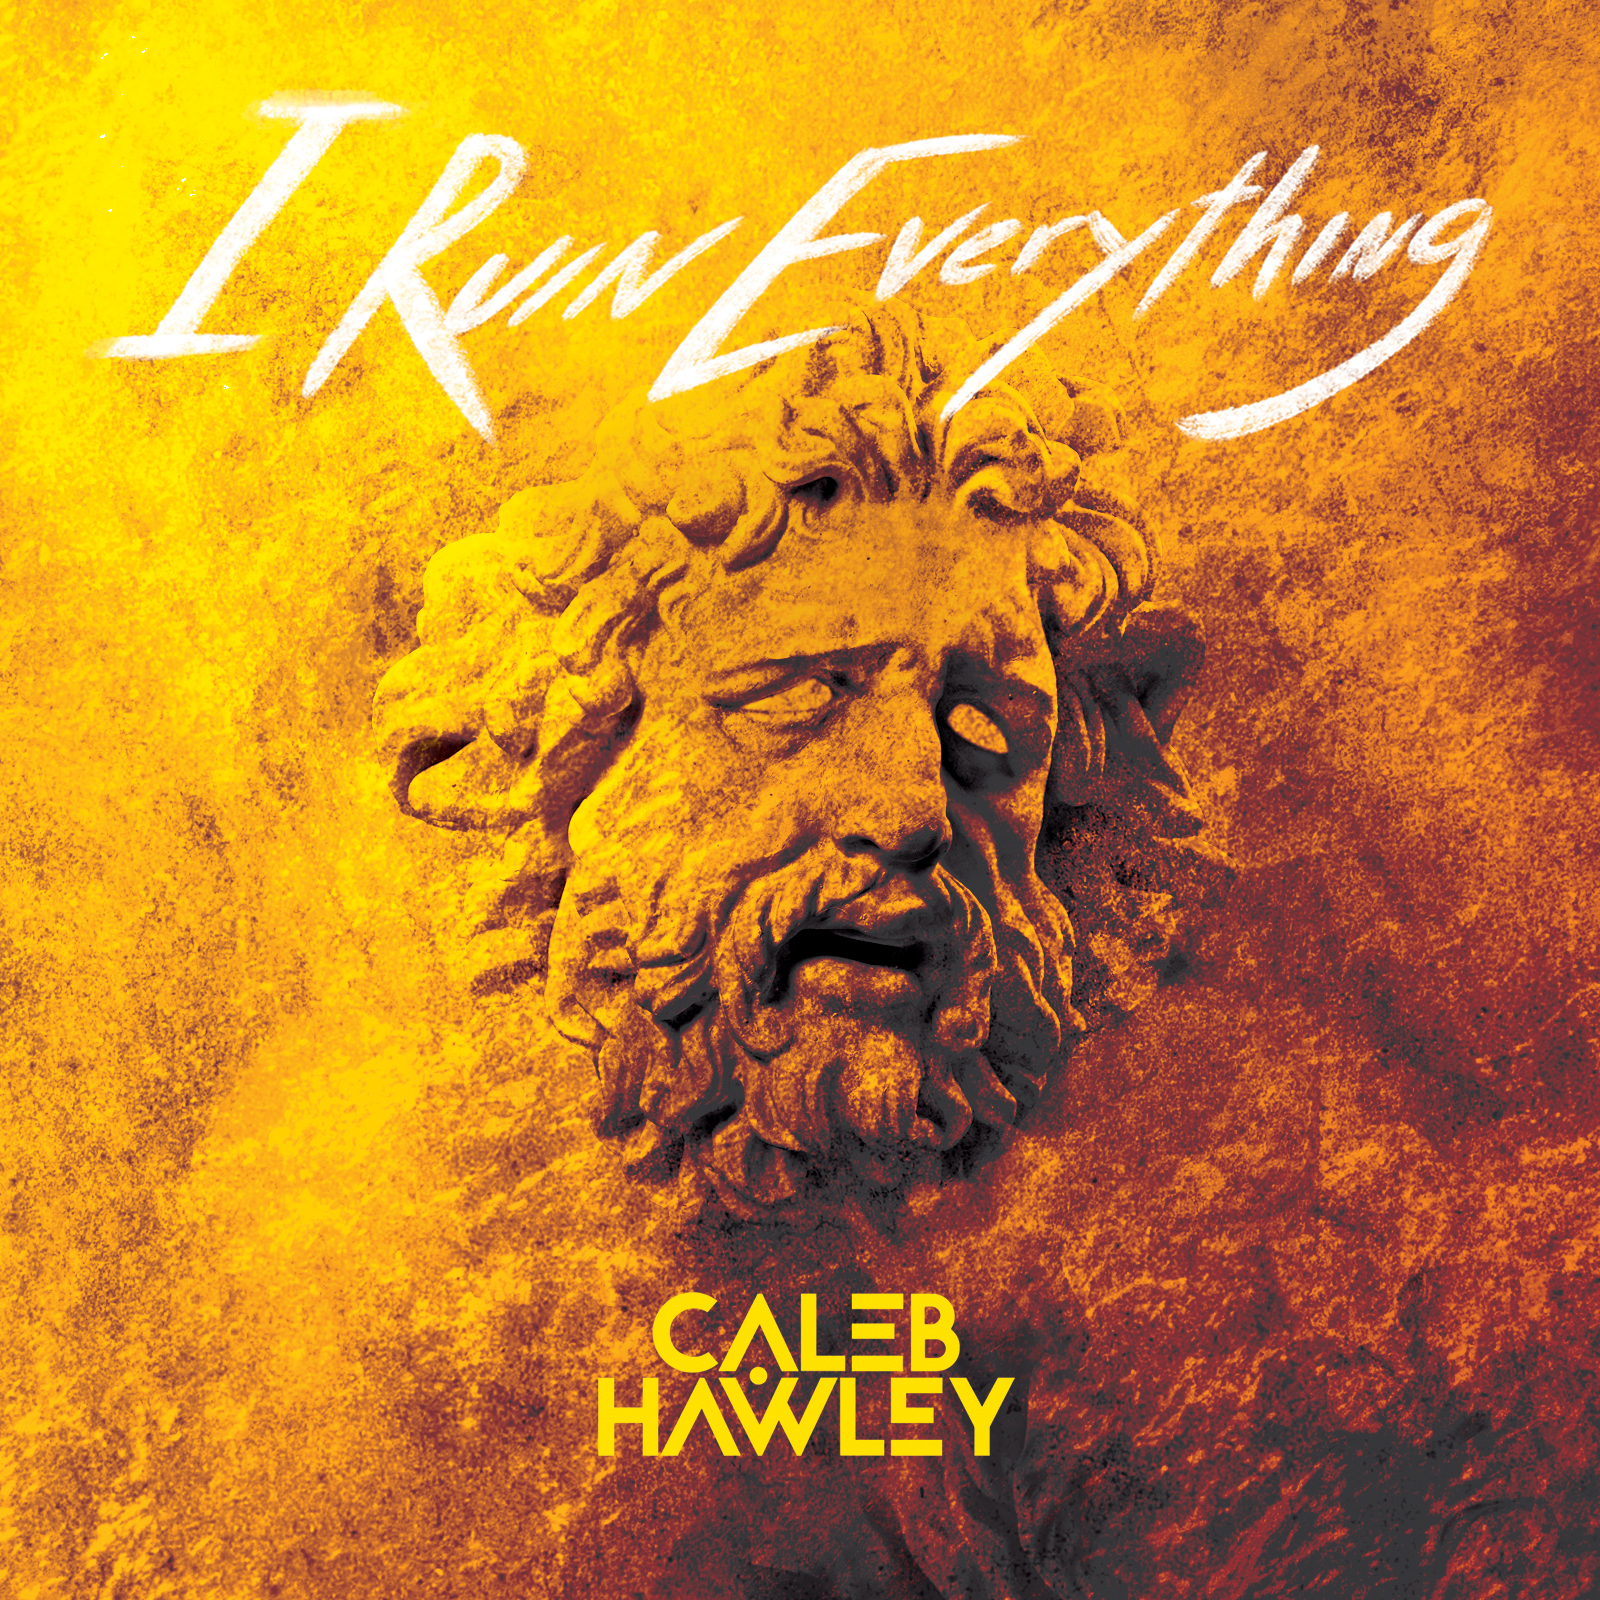 Caleb Hawley_I Ruin Everything_RGB_72_dpi.jpg